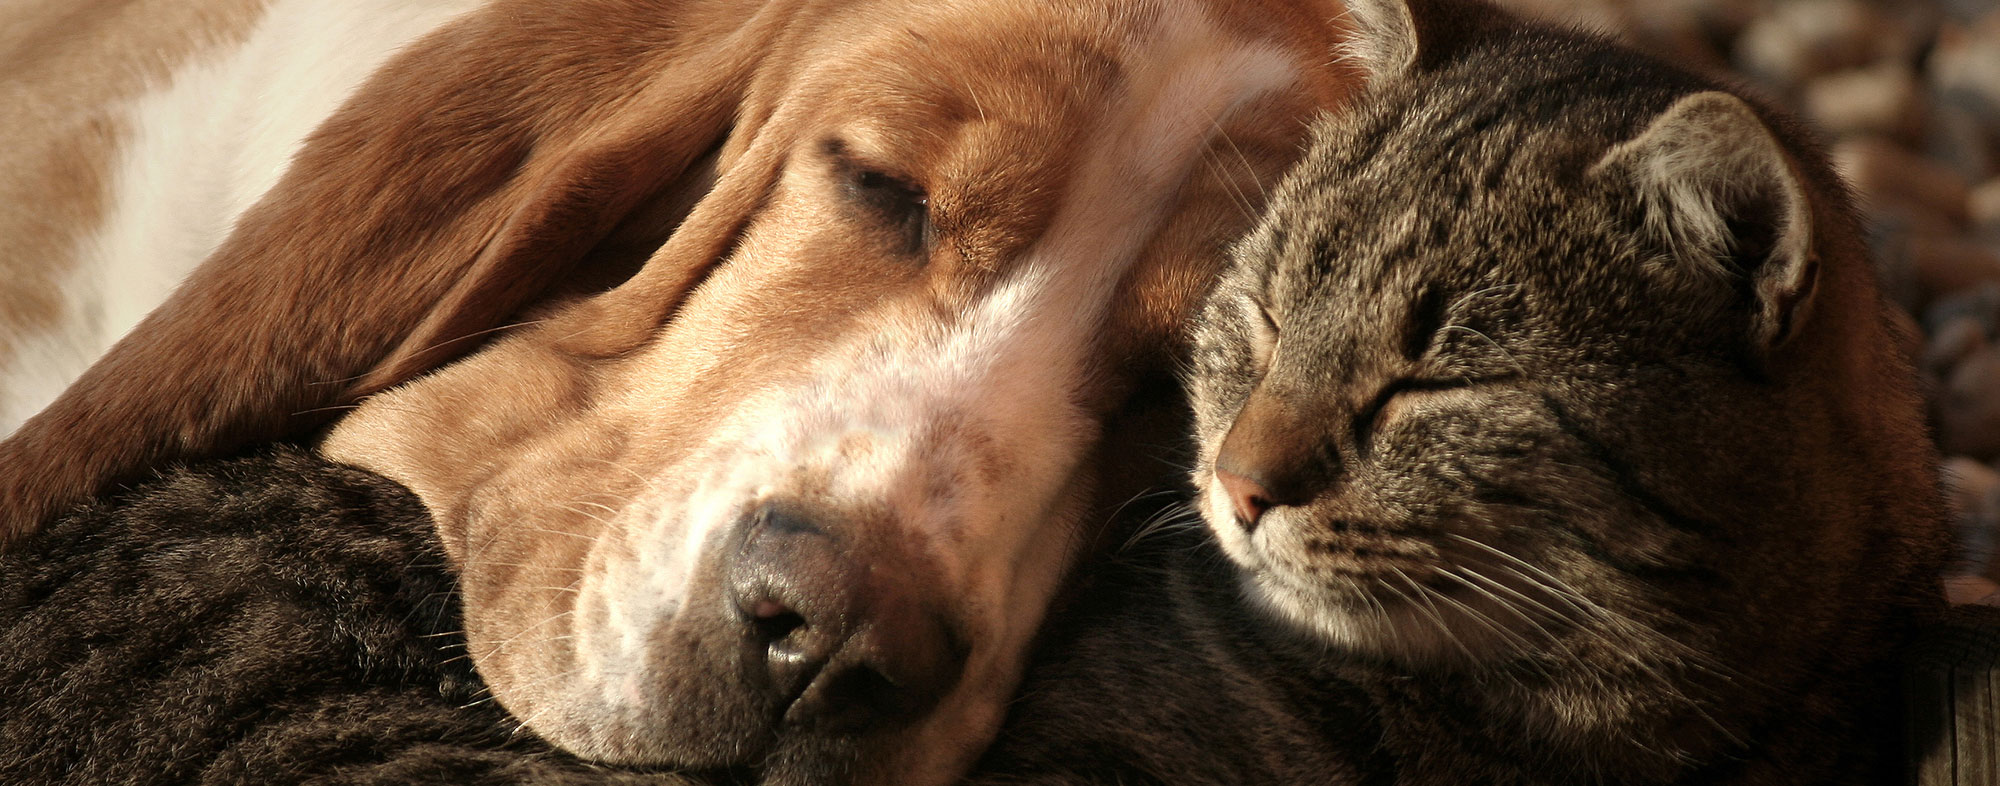 Dog and cat sleeping together. Be sure to use the right flea medicine on you dog and cat.